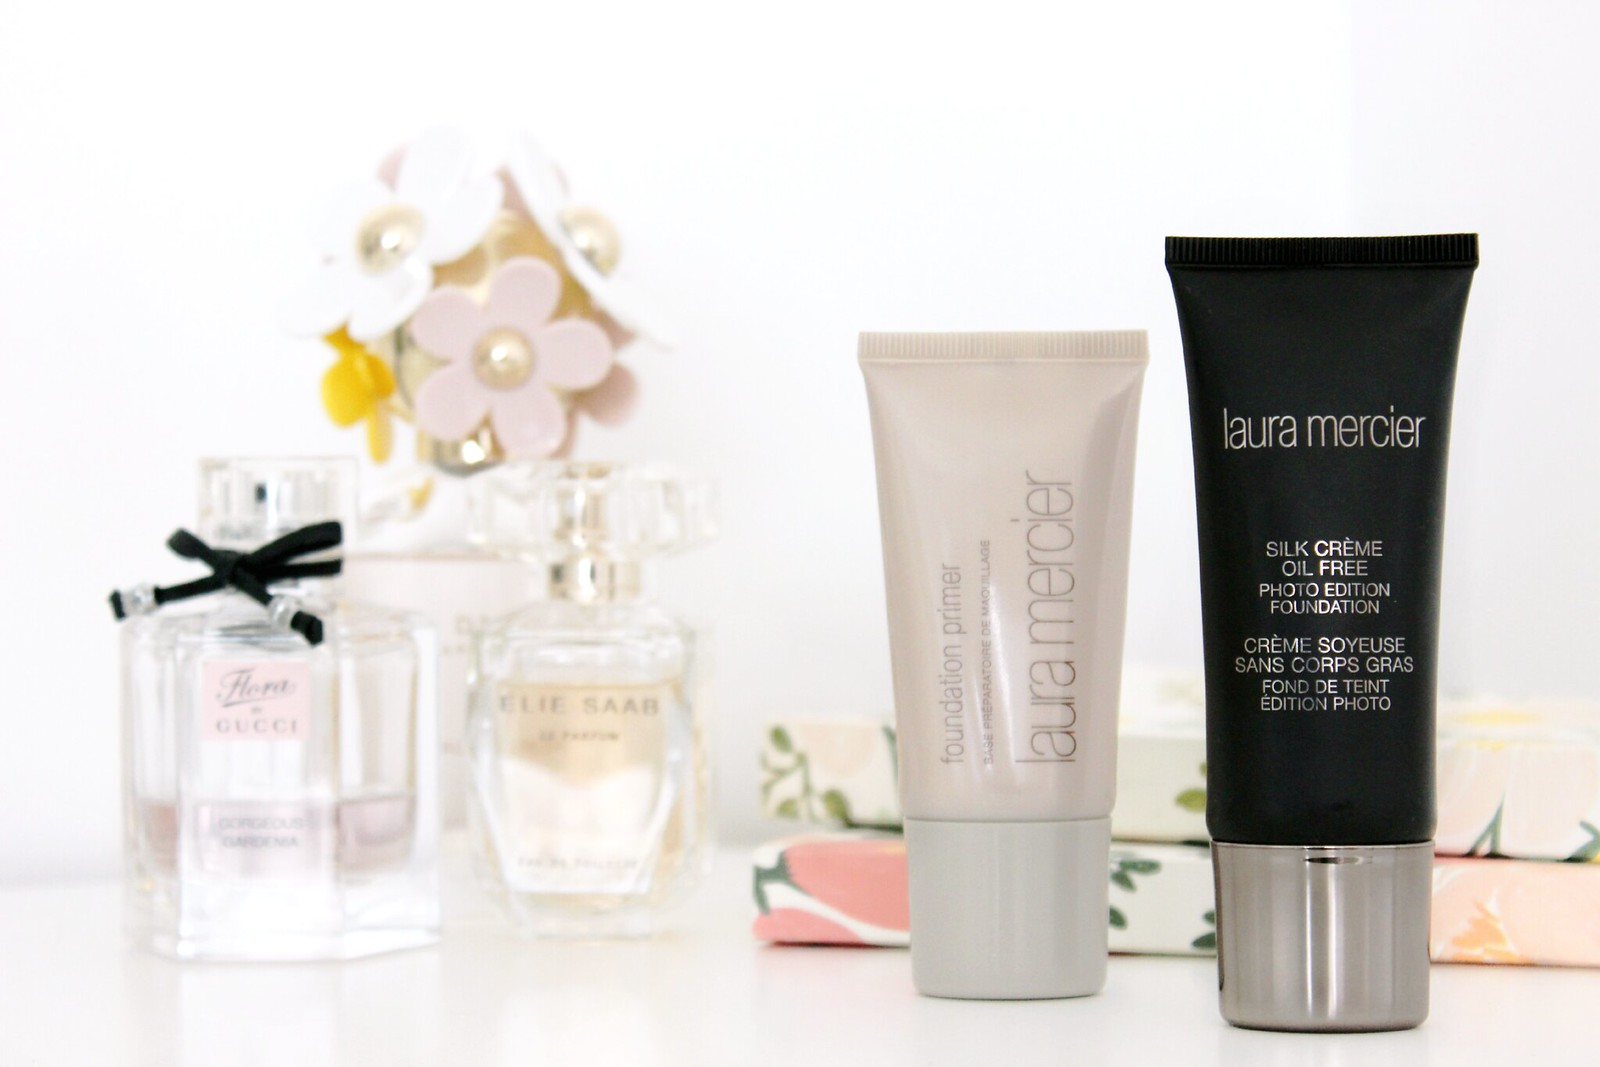 Laura Mercier Silk Crème Foundation and Primer